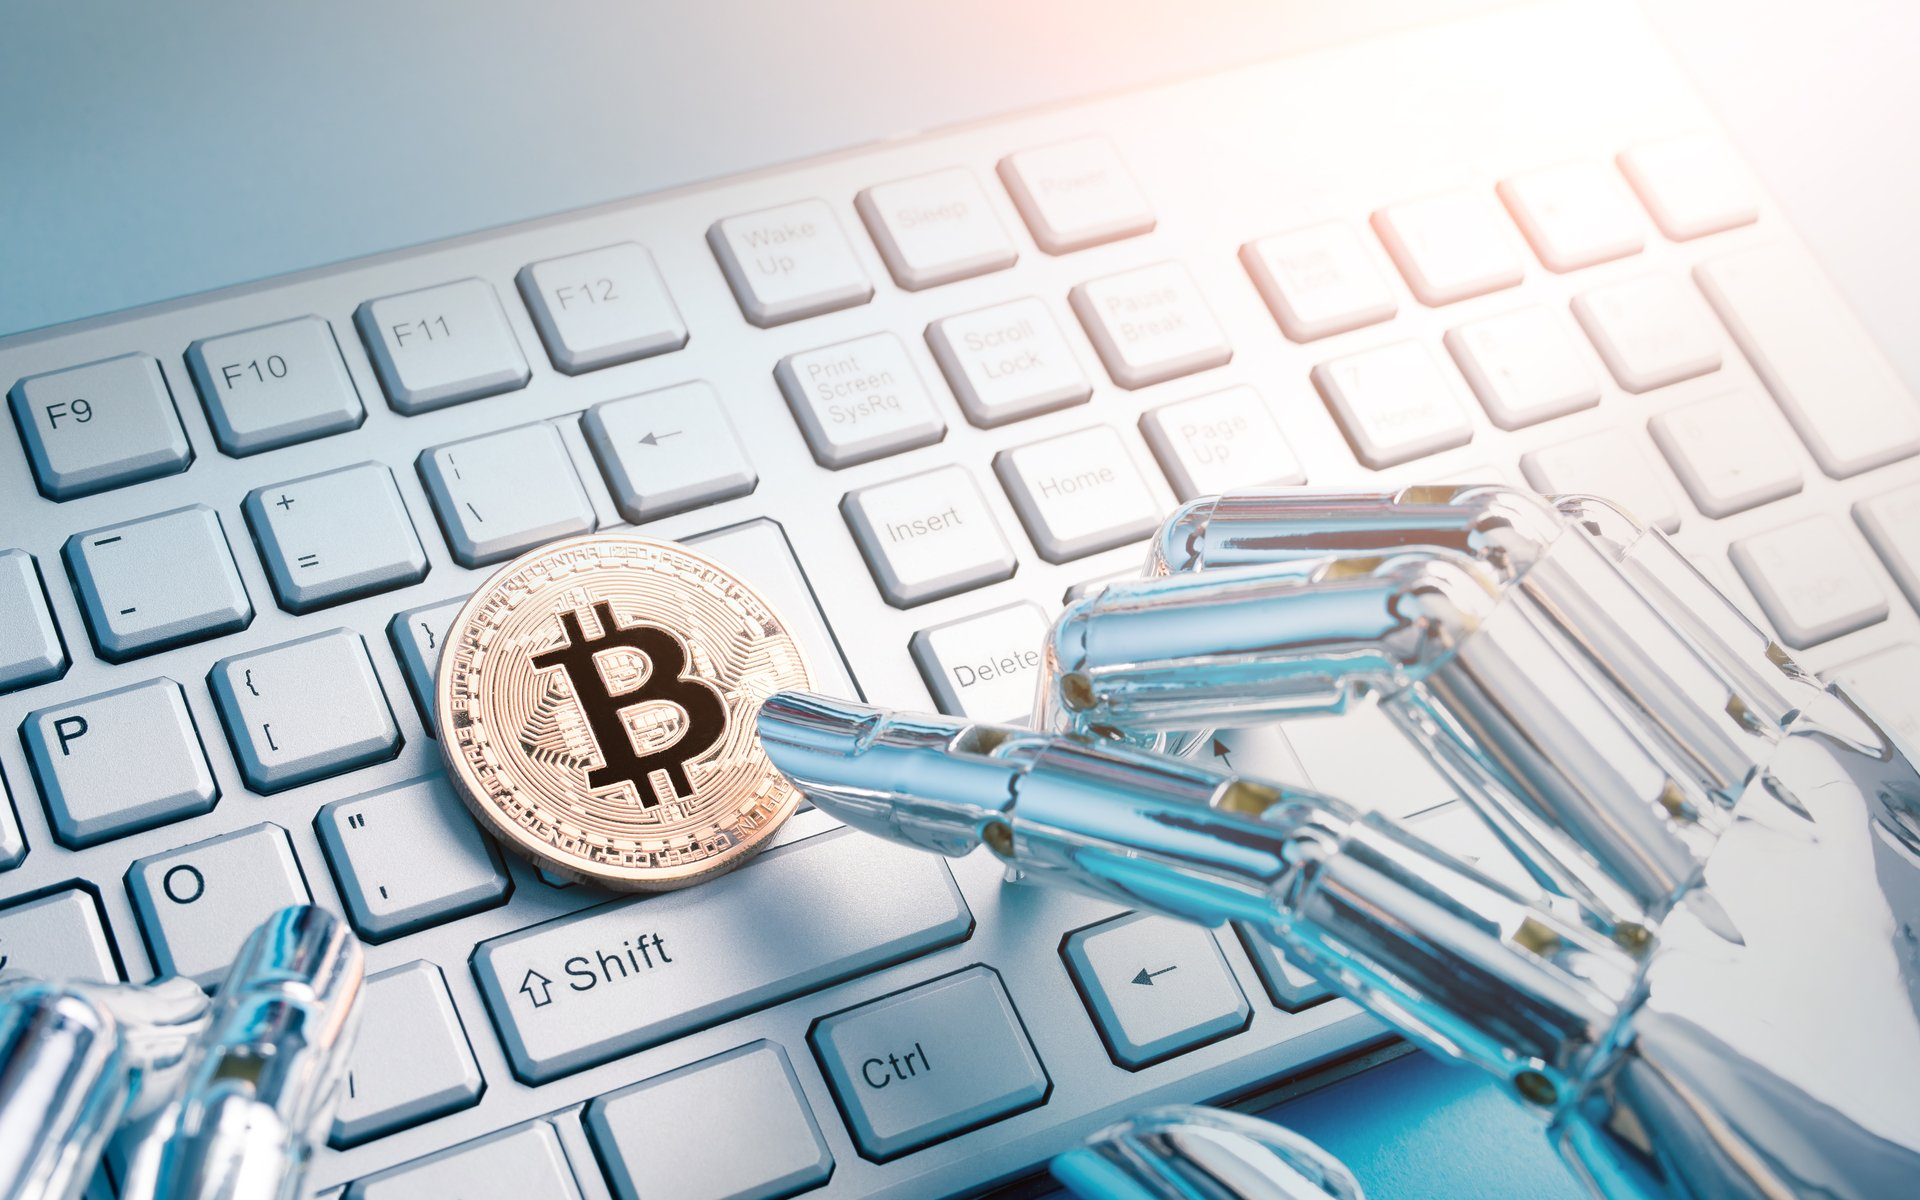 Cryptocurrencies, blockchain, and robotic technology